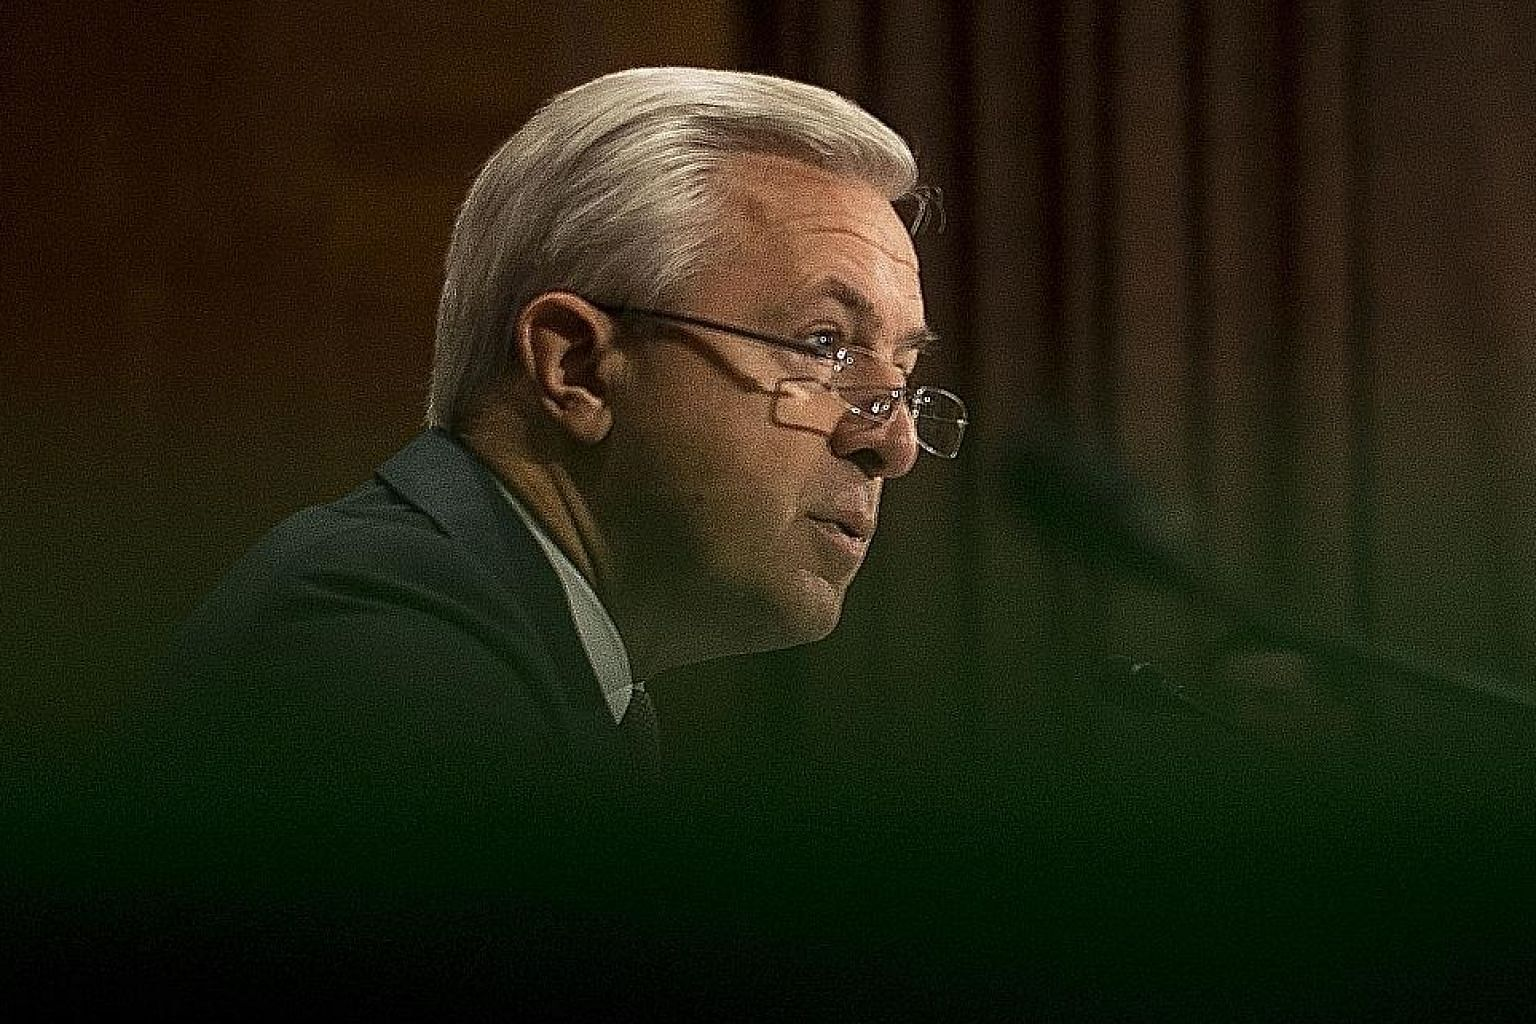 Former Wells Fargo chief executive John Stumpf agreed to a lifetime ban from the banking industry for his role in a toxic sales culture that foisted unwanted products and sham bank accounts on millions of customers.